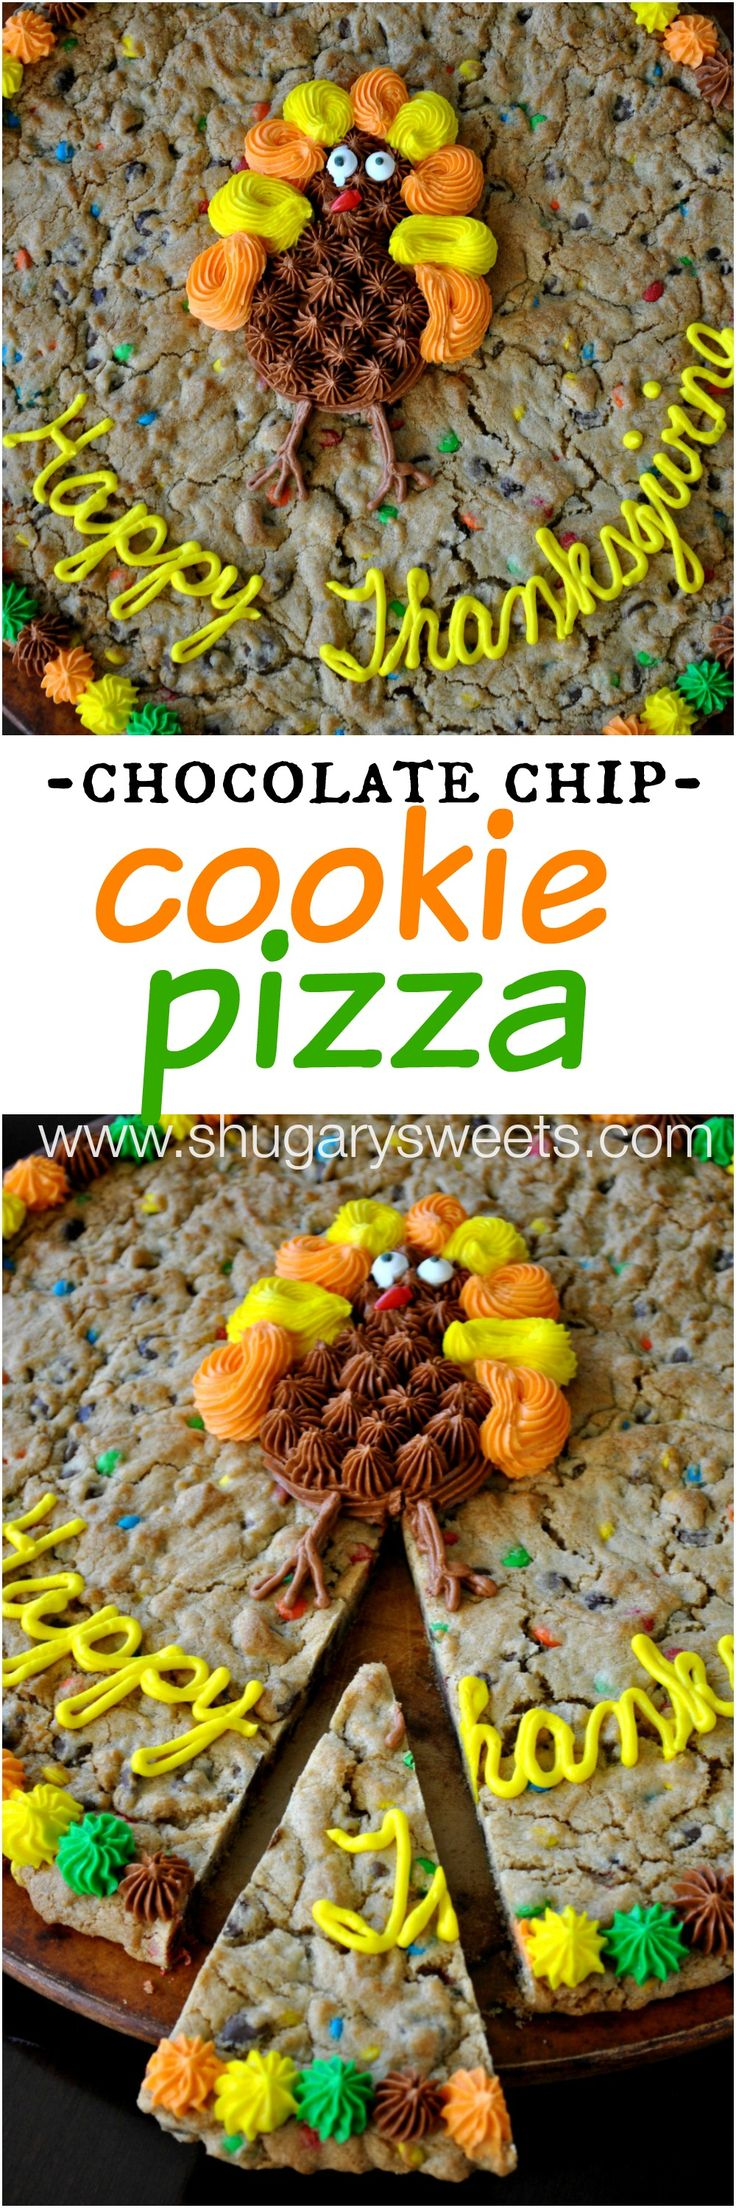 Chocolate Chip Cookie Pizza: celebrate the holidays with a delicious, homemade cookie cake!